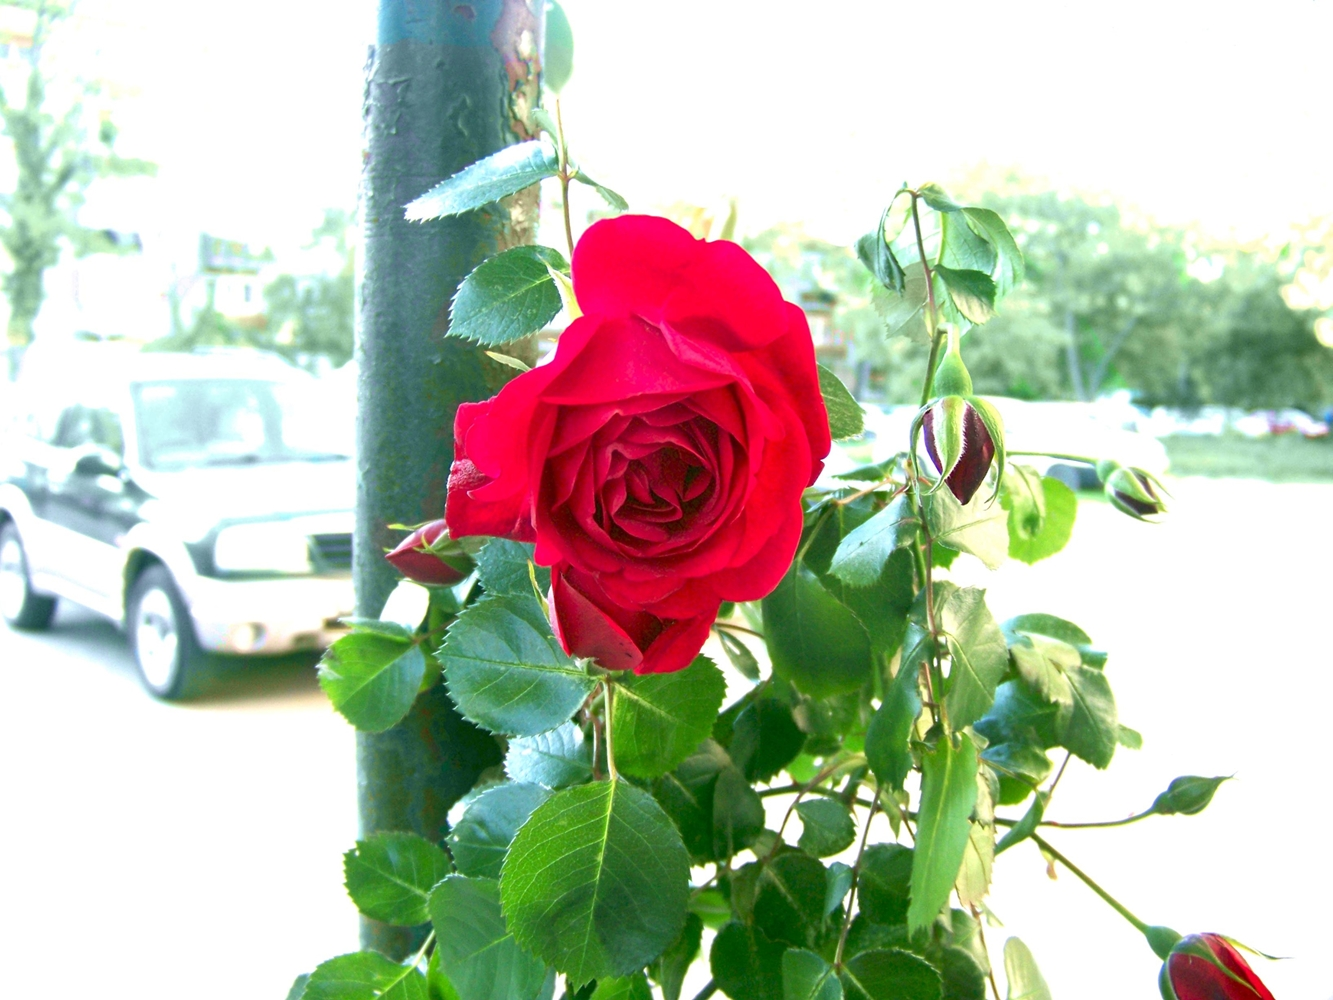 Red rose near a parking lot photo